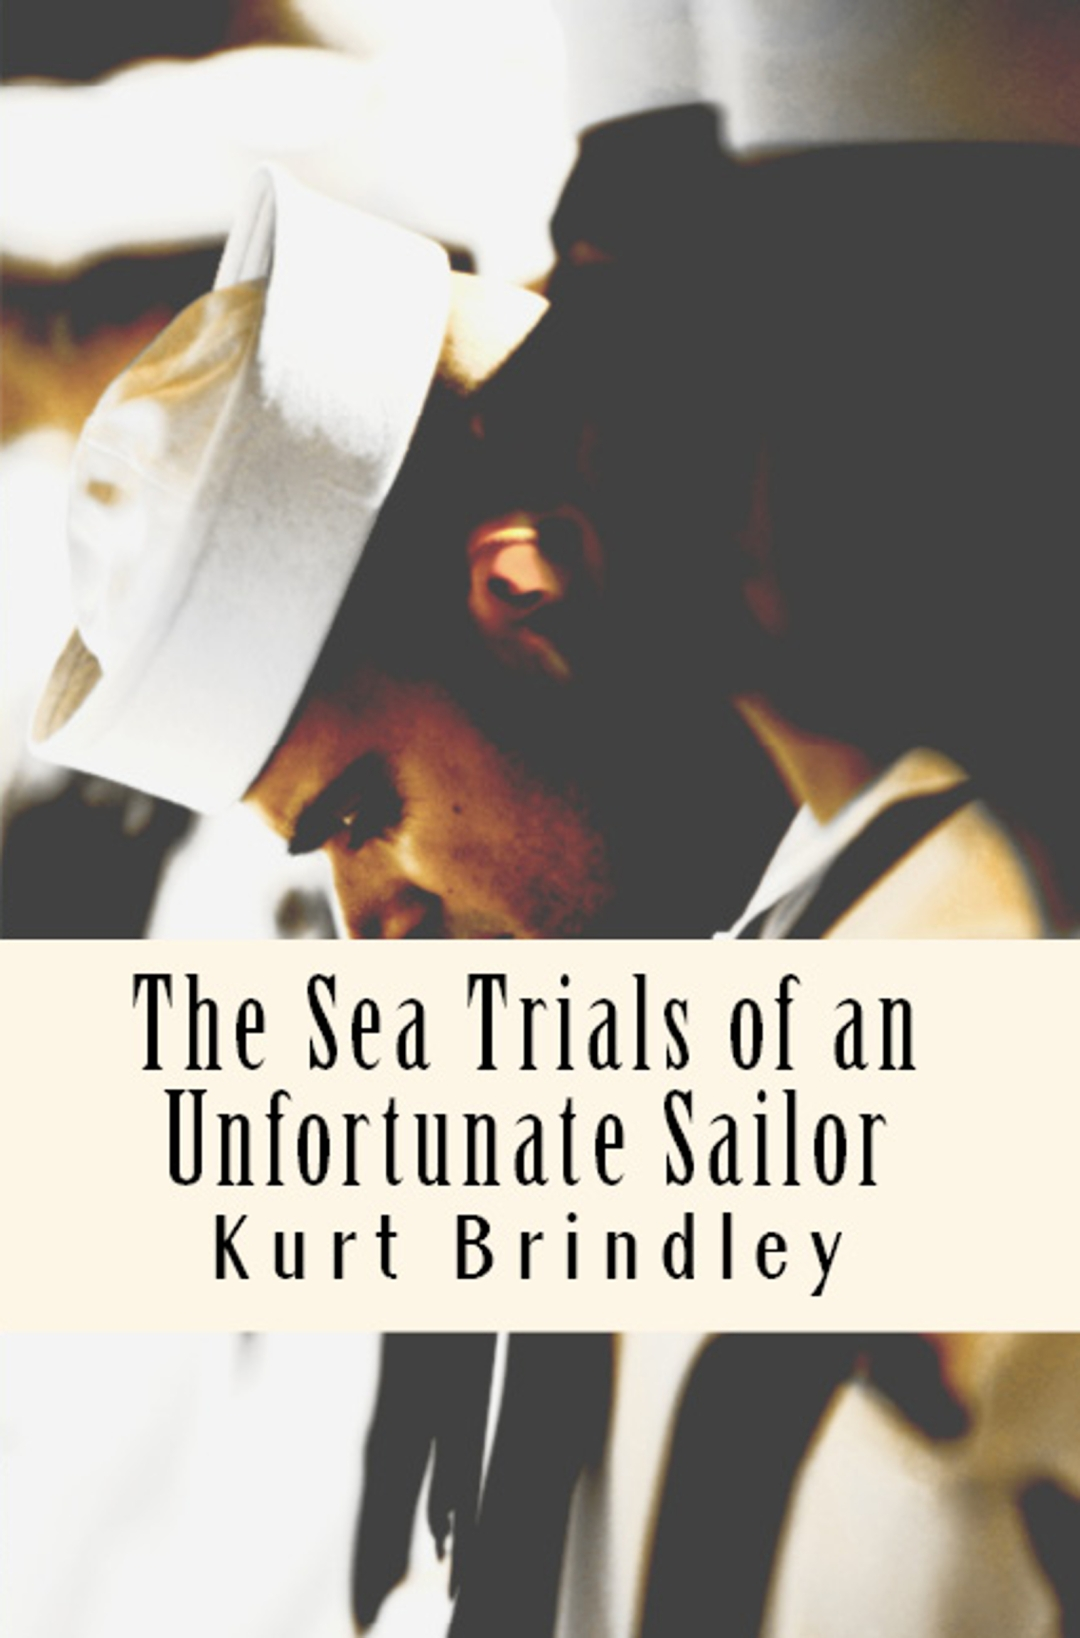 The Sea Trials of an Unfortunate Sailore